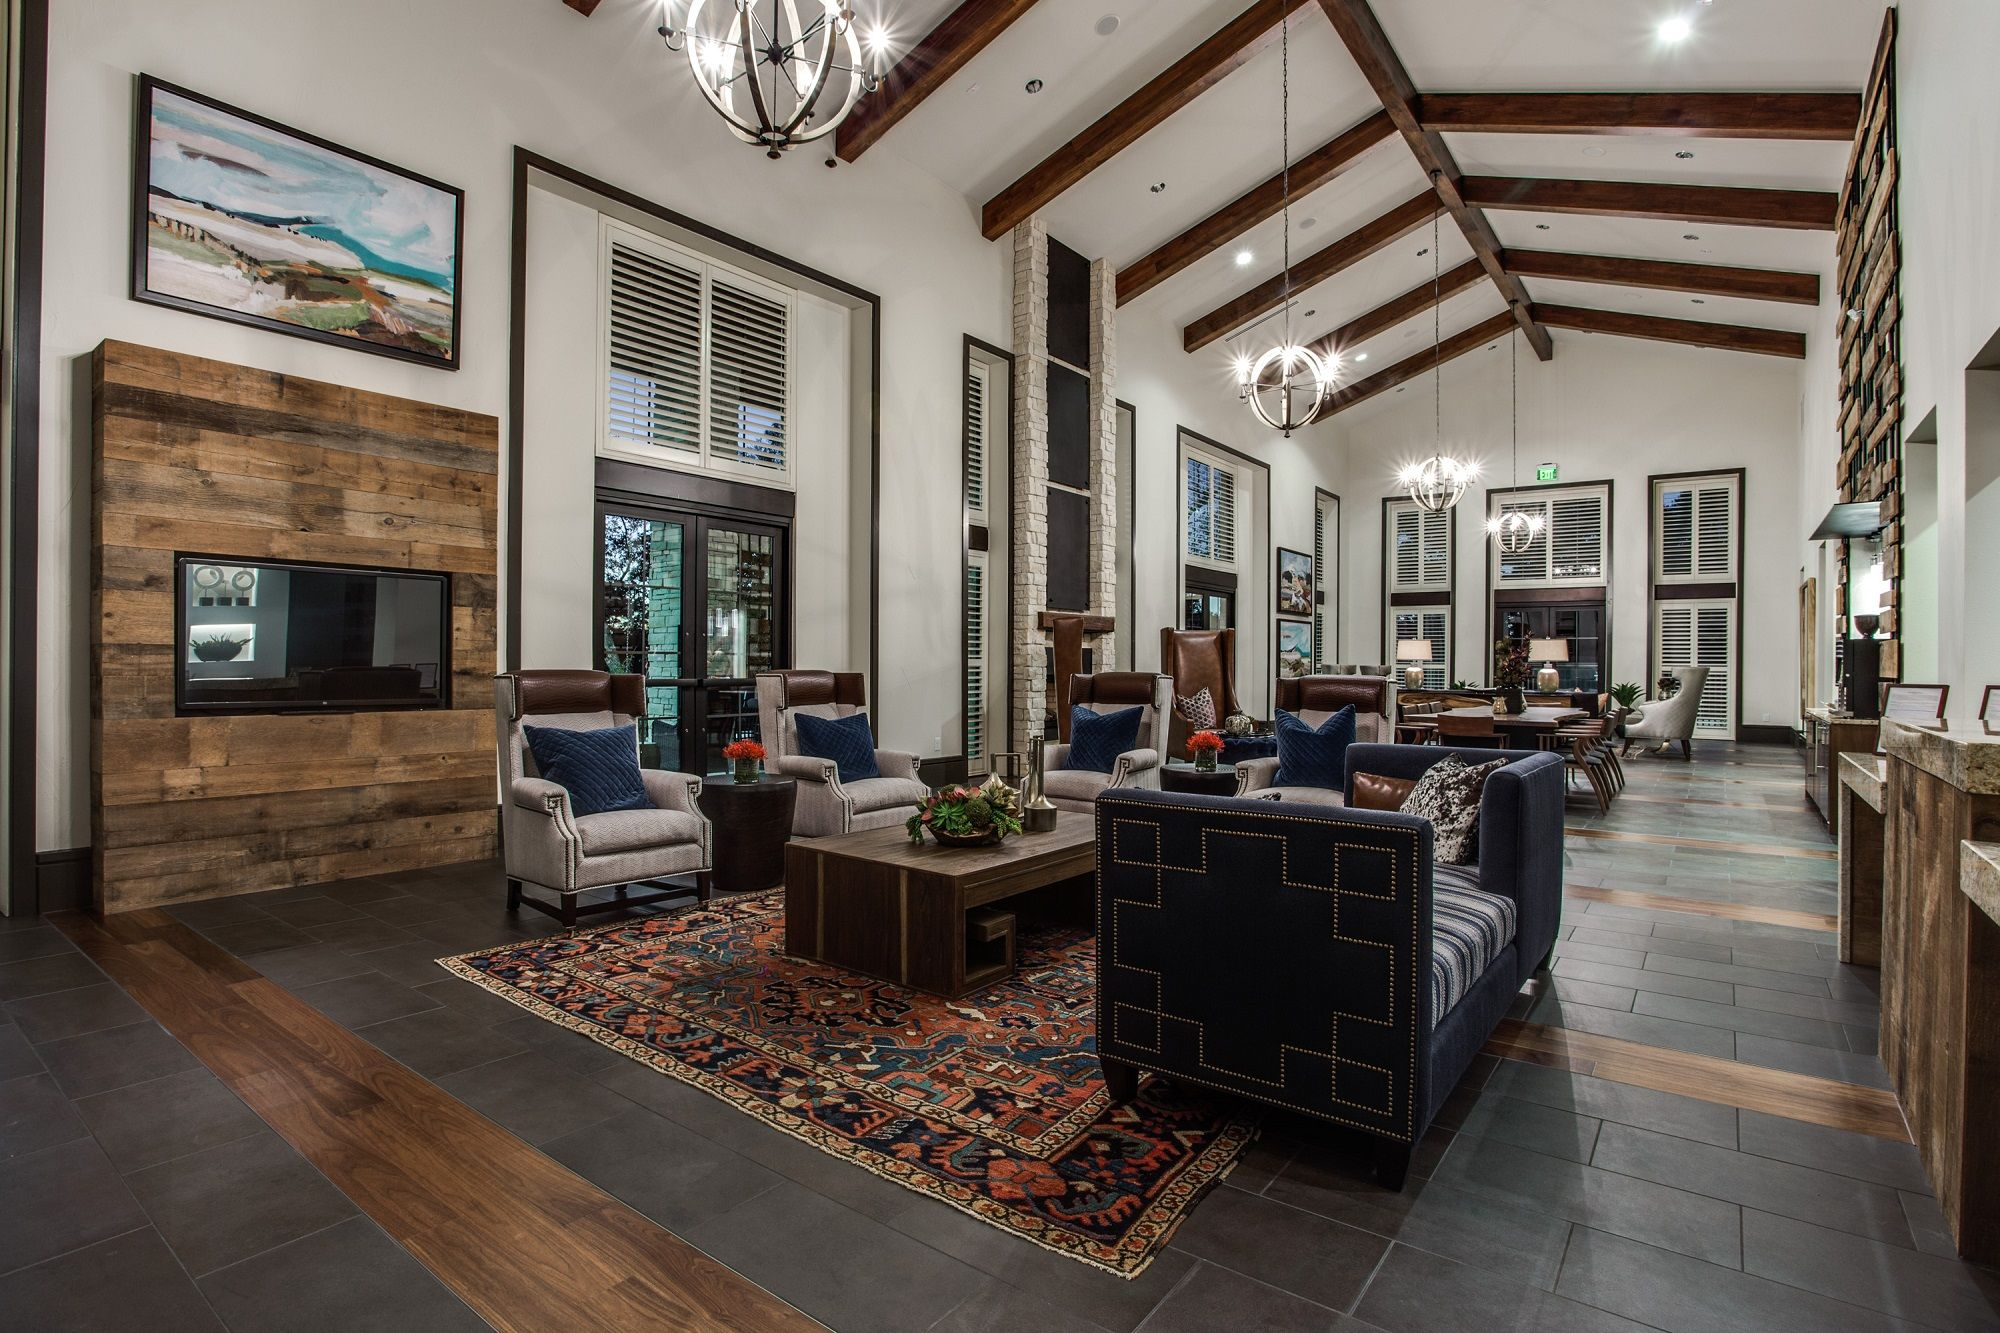 Can You Get An Apartment At 18 In Texas The Michael At Presidio Luxury Austin Tx Apartments For Rent Apartments For Rent Apartment Apartment Communities